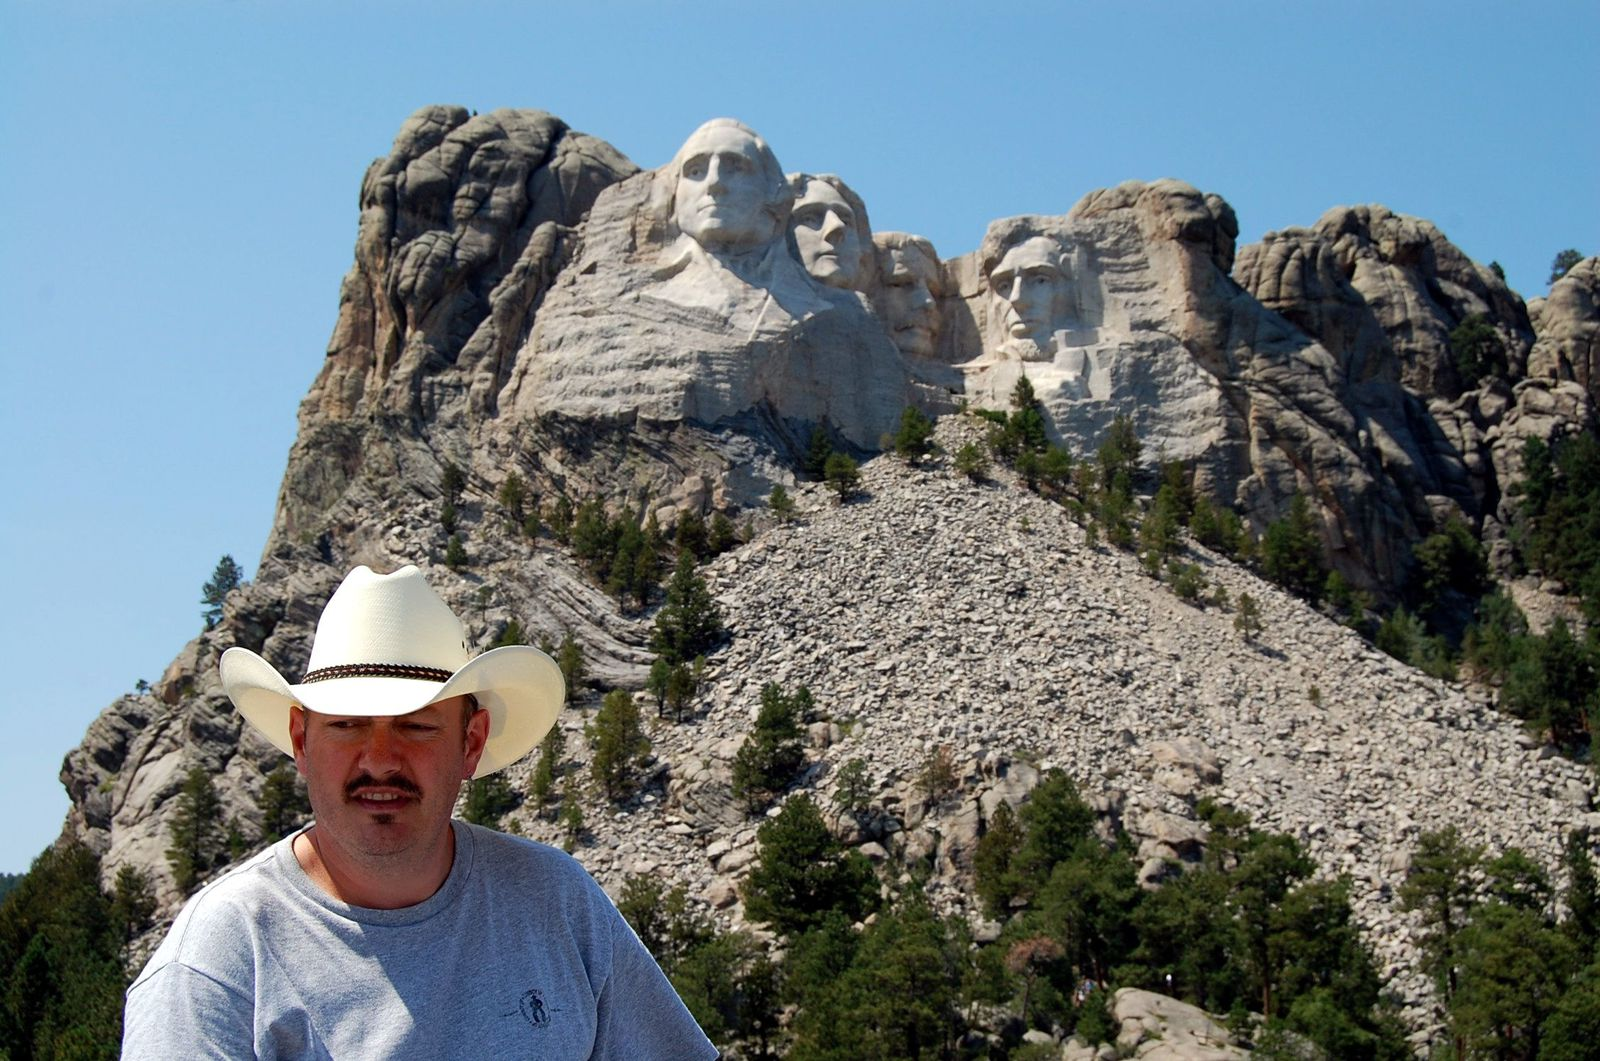 Mount rushmore national memorial crazy horse memorial